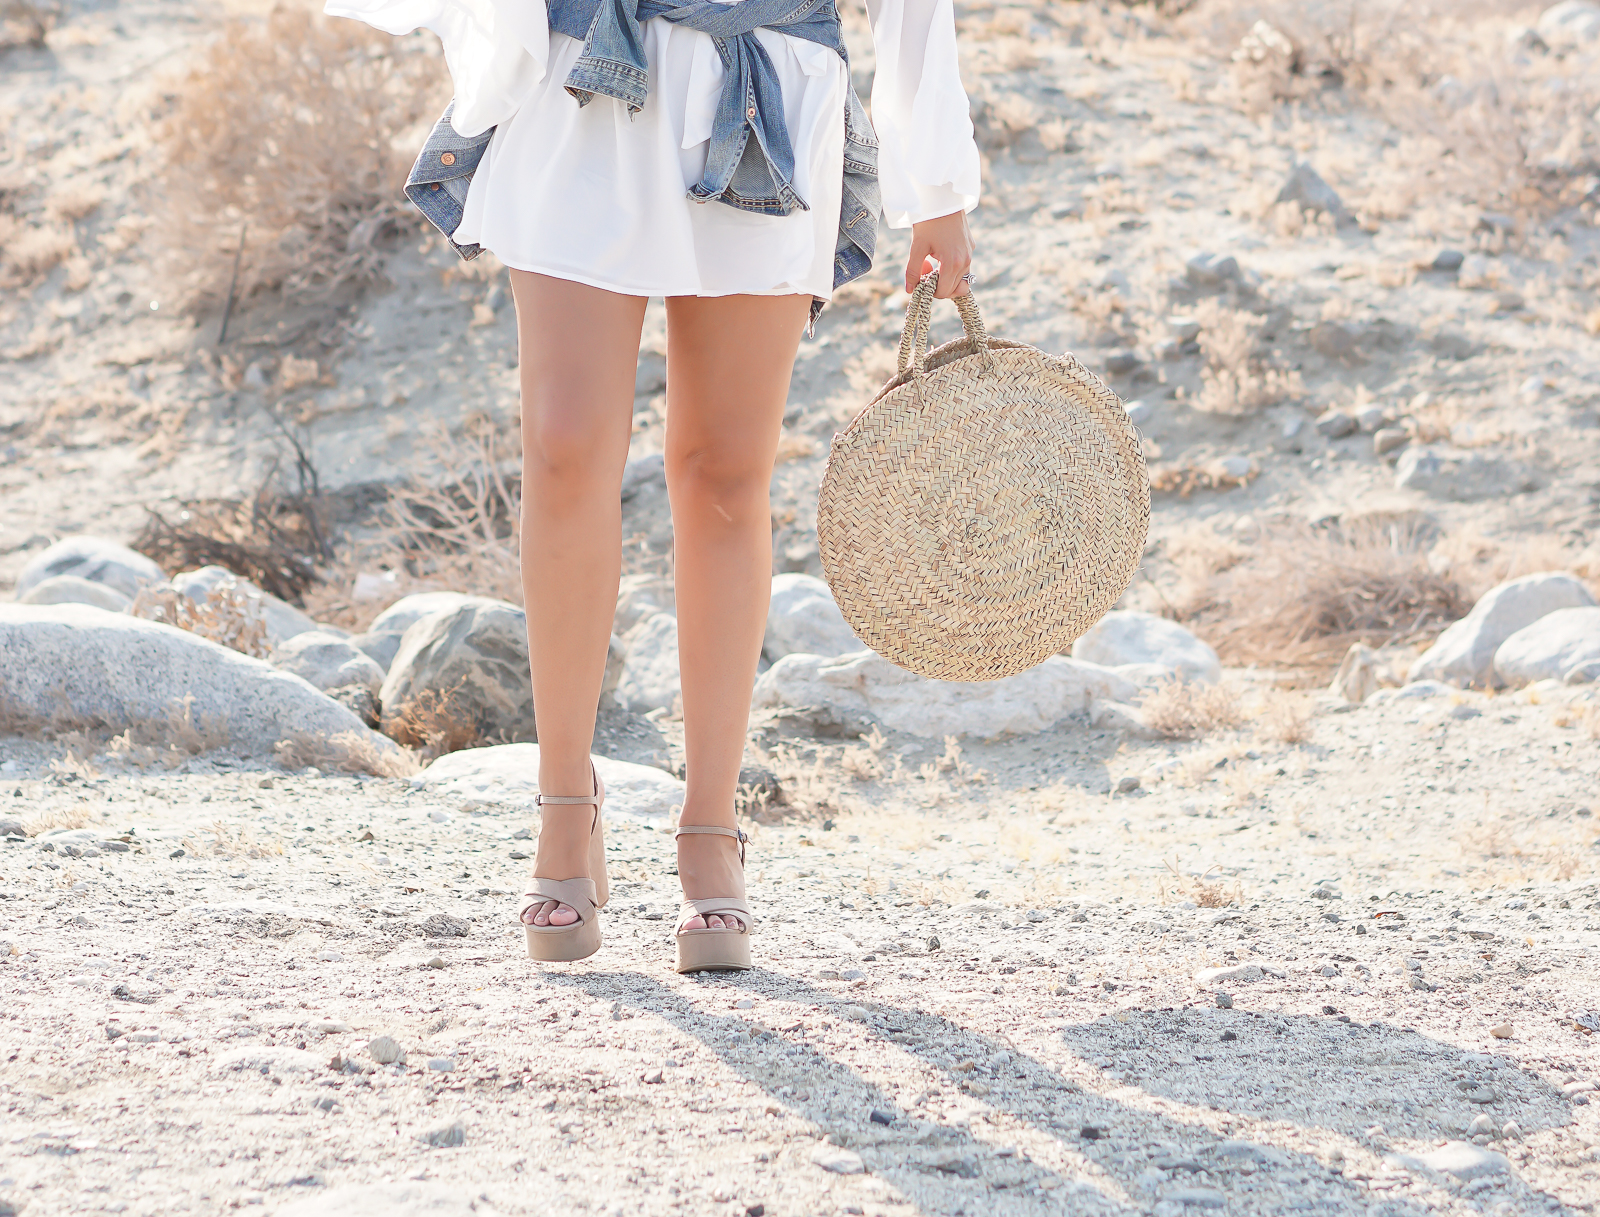 Fashion, SheIn Review, Travel, SheIn White Off the Shoulder Dress, H&M Jean Jacket, Palm Springs Desert, Desert Photography, Desert Fashion Photography, Quay x Desi Perkins Sunglasses, Quay Australia High Key Sunglasses, Round Large Wicker Basket Bag, French Baskets, Zara Nude Wedges